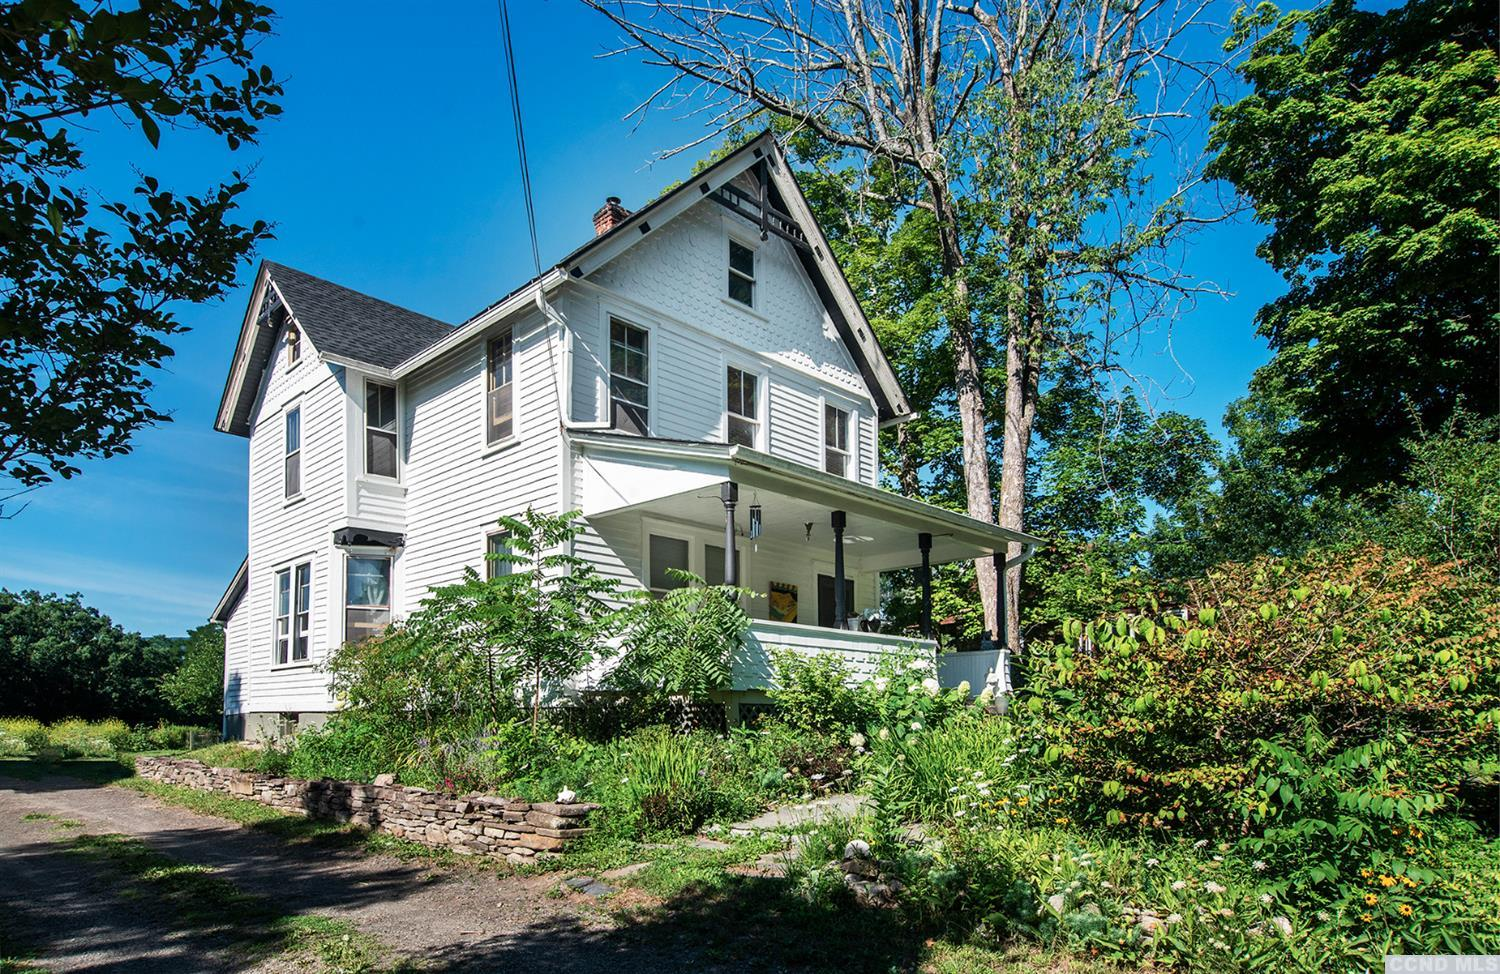 This 3-BR, 2-BA Victorian farmhouse is loaded with casual Bohemian chic & charm, including exposed brick walls, a lofted third floor, wide-plank oak flooring, open kitchen shelving, & a claw-foot soaking tub. Many of the home's original architectural details are intact, & there's a large front porch on which to spend balmy summer afternoons & evenings. The expansive backyard borders a picturesque open meadow, where, from time to time, bovine species can be spotted grazing the day away. (Whatever could be more bucolic!) And, several windows of the upper two floors peek directly at the Catskills in the distance. Modern appliances, abundant closet space, a Pacific Energy wood stove, updated electrical service & eclectic light fixtures througho